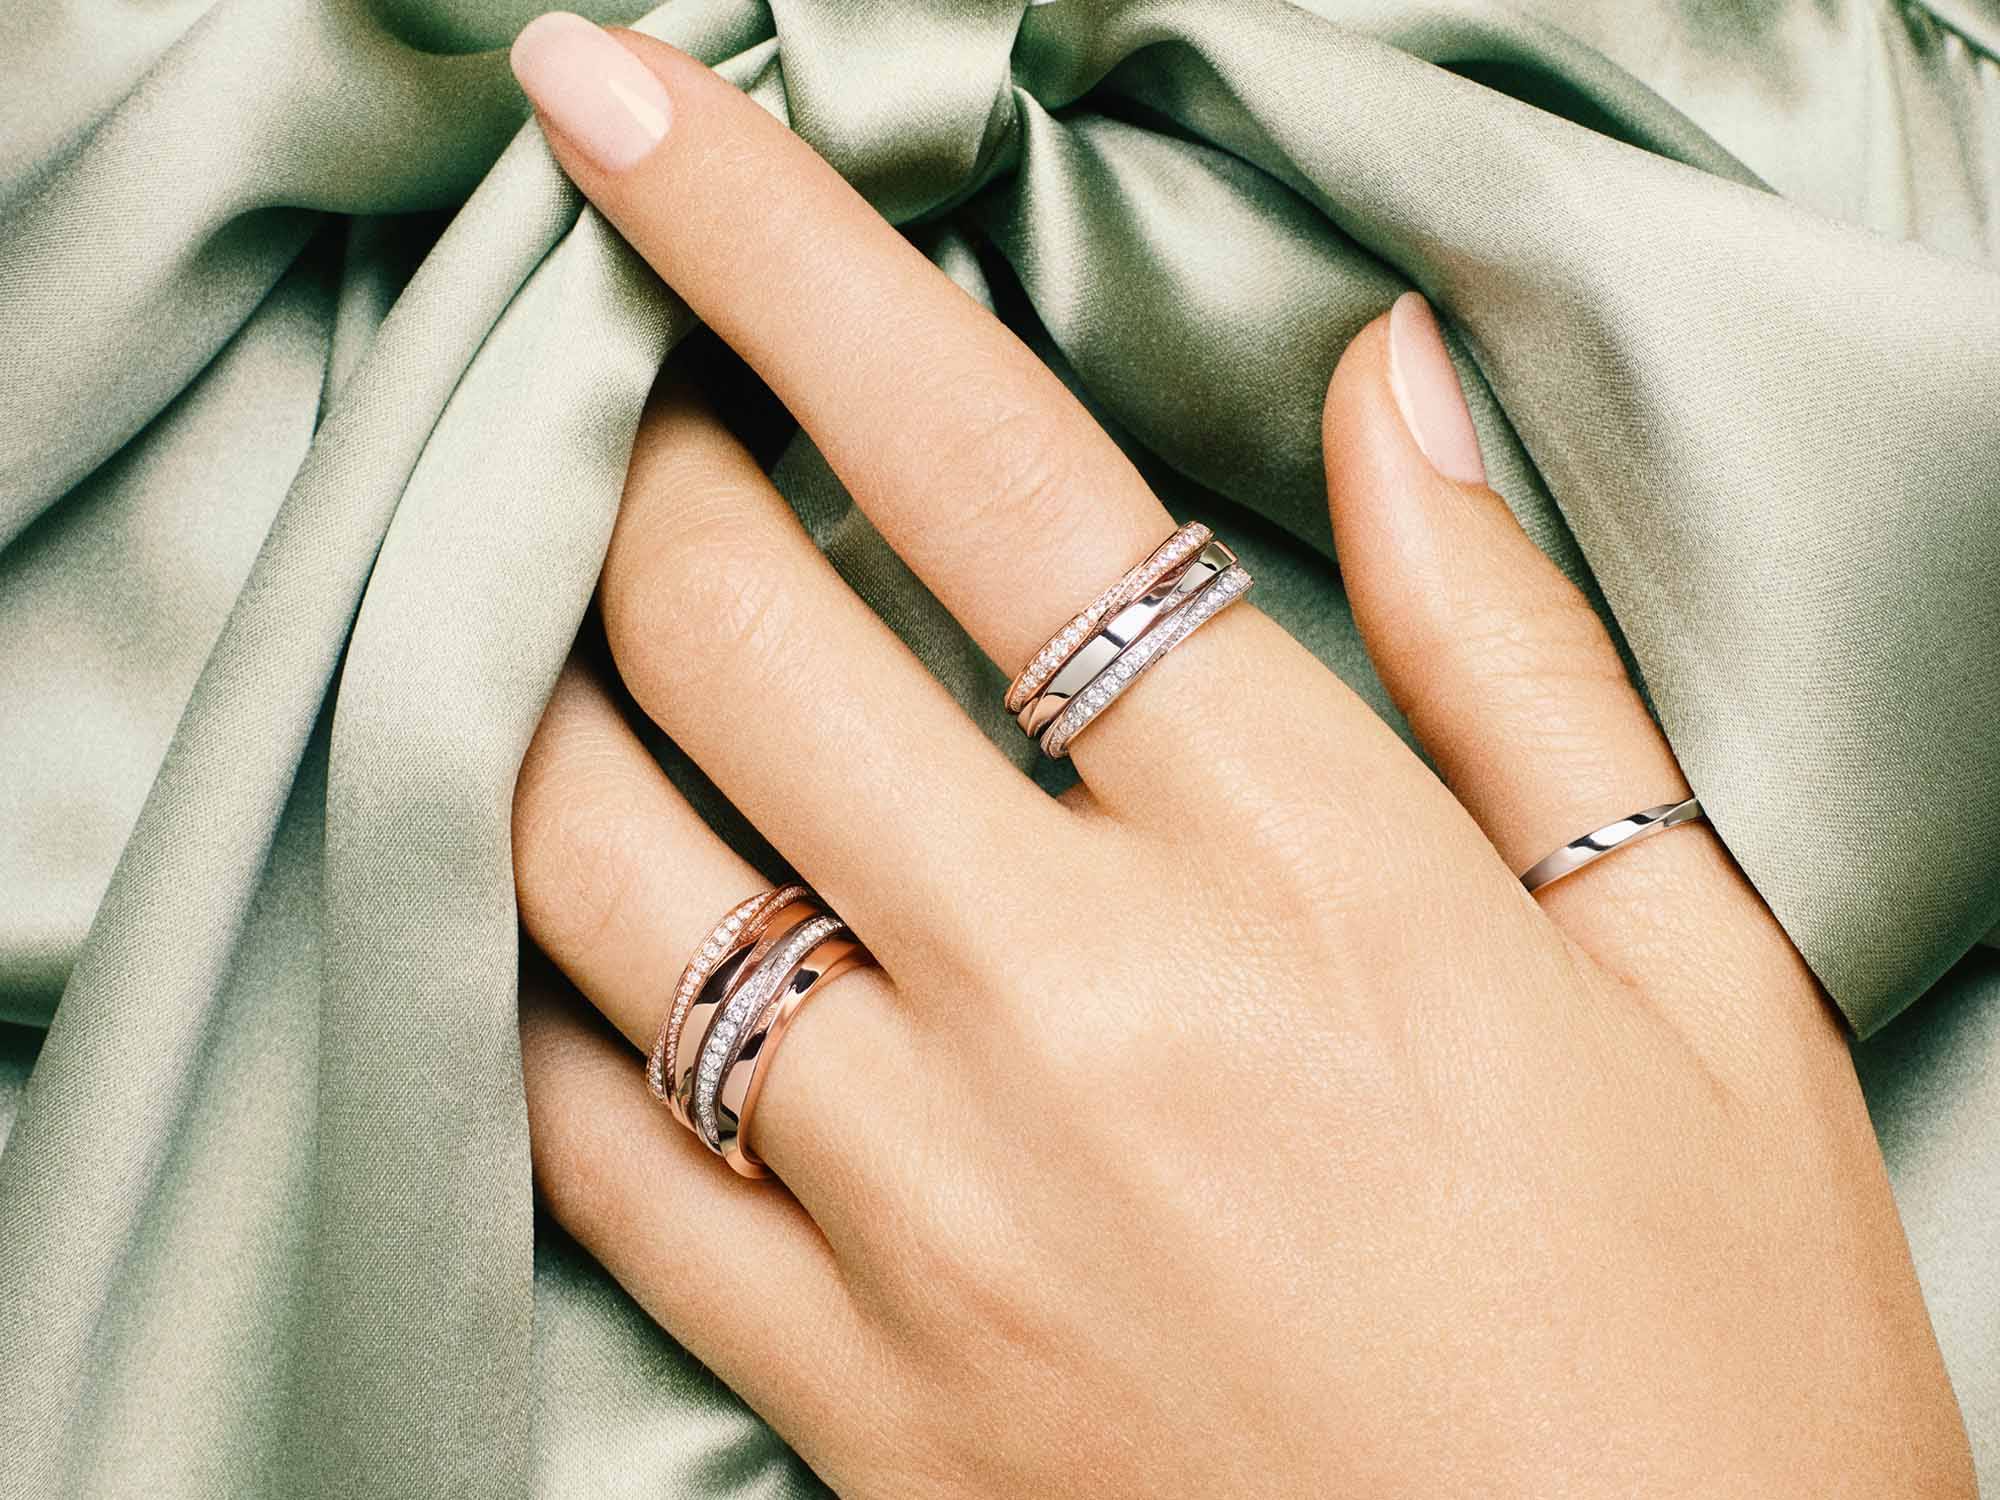 Model's hand with Spiral Pavé Diamond Band and Spiral Band from the Graff Spiral Jewellery Collection